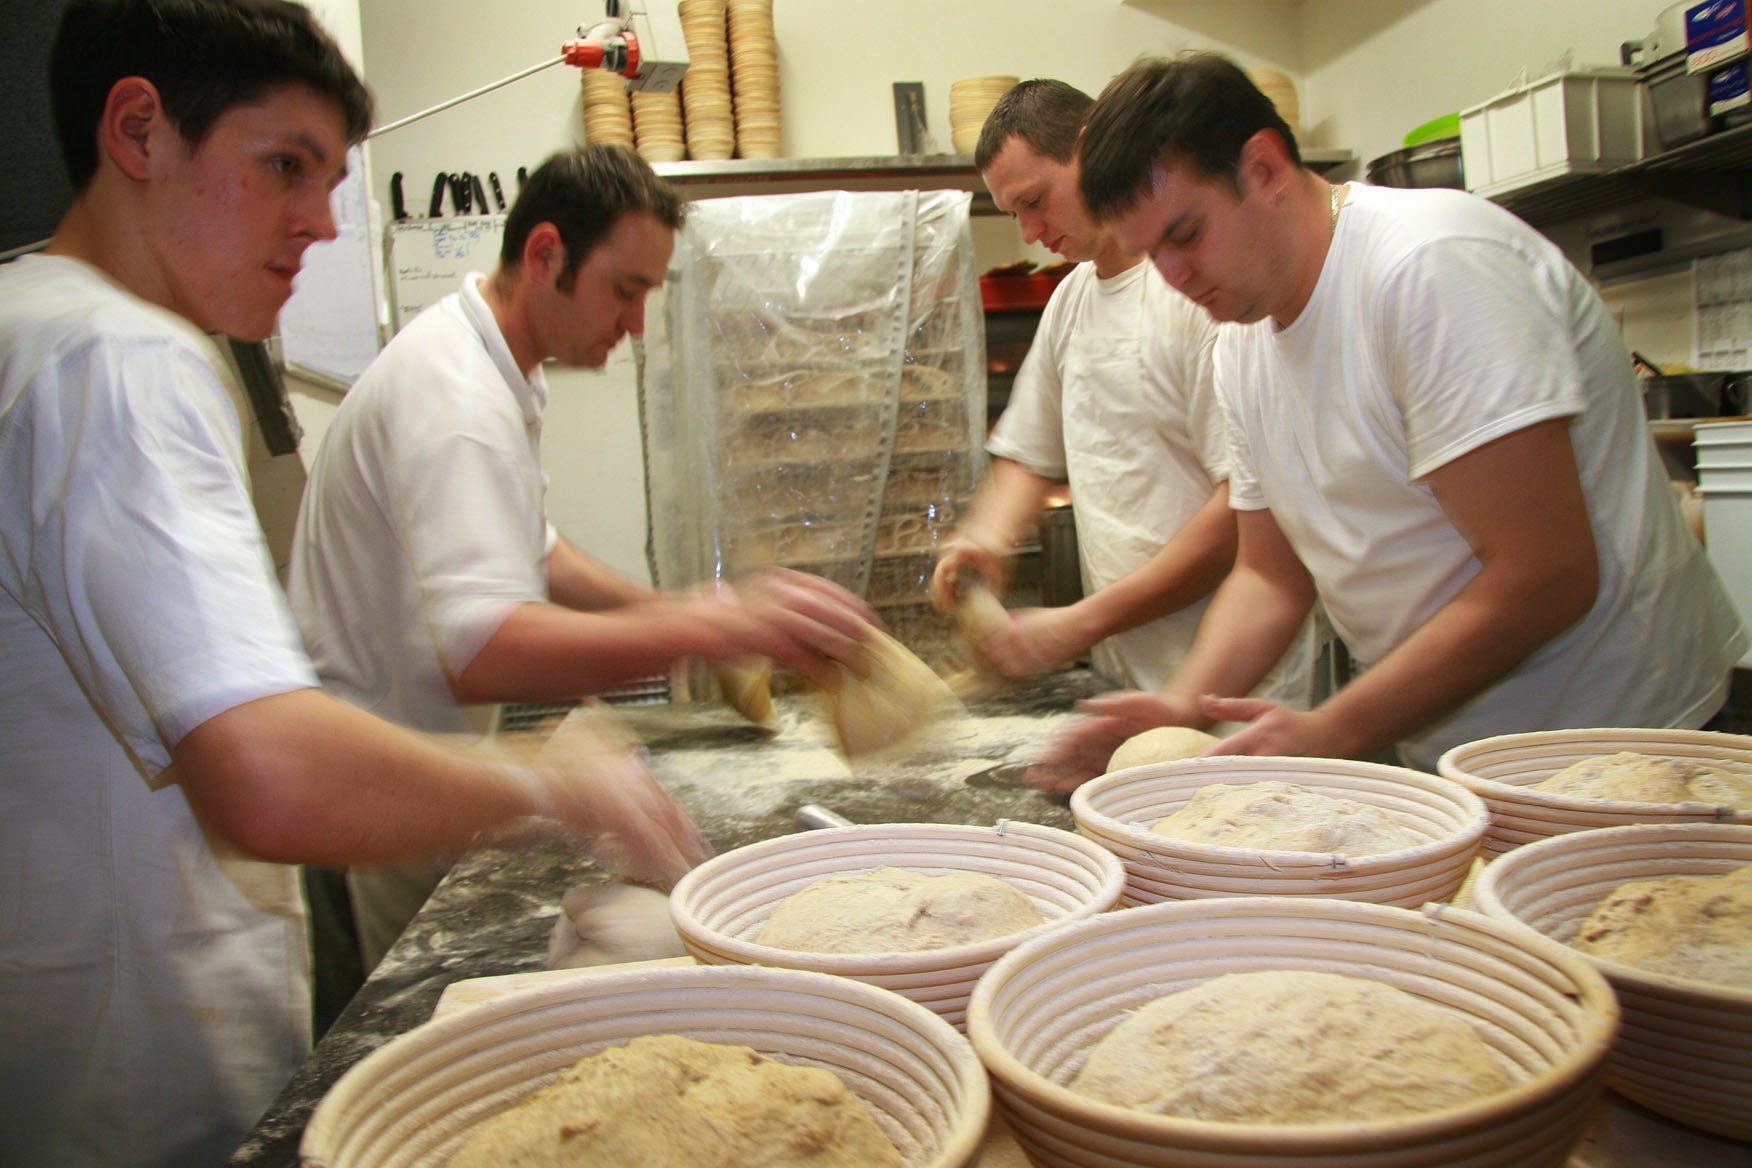 Bakers working circa 2006